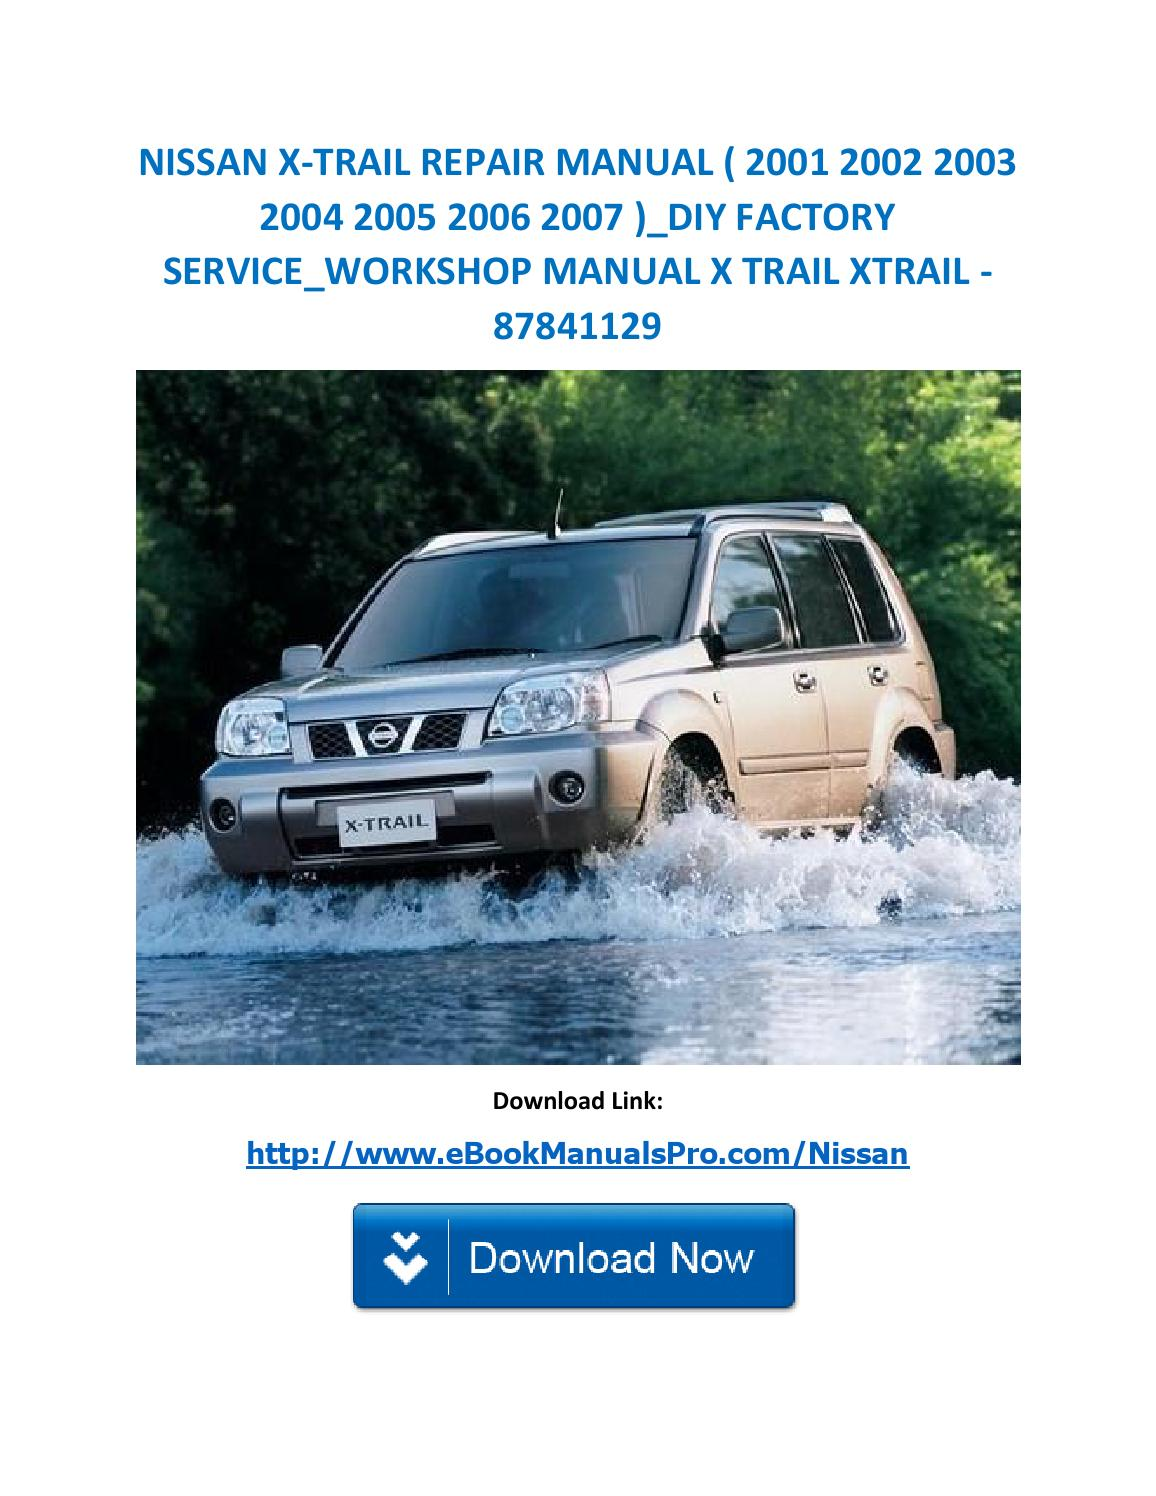 nissan x trail repair manual ( 2001 2002 2003 2004 2005 2006 2007nissan x trail repair manual ( 2001 2002 2003 2004 2005 2006 2007 ) diy factory service workshop man by servicemanualsdownloads issuu